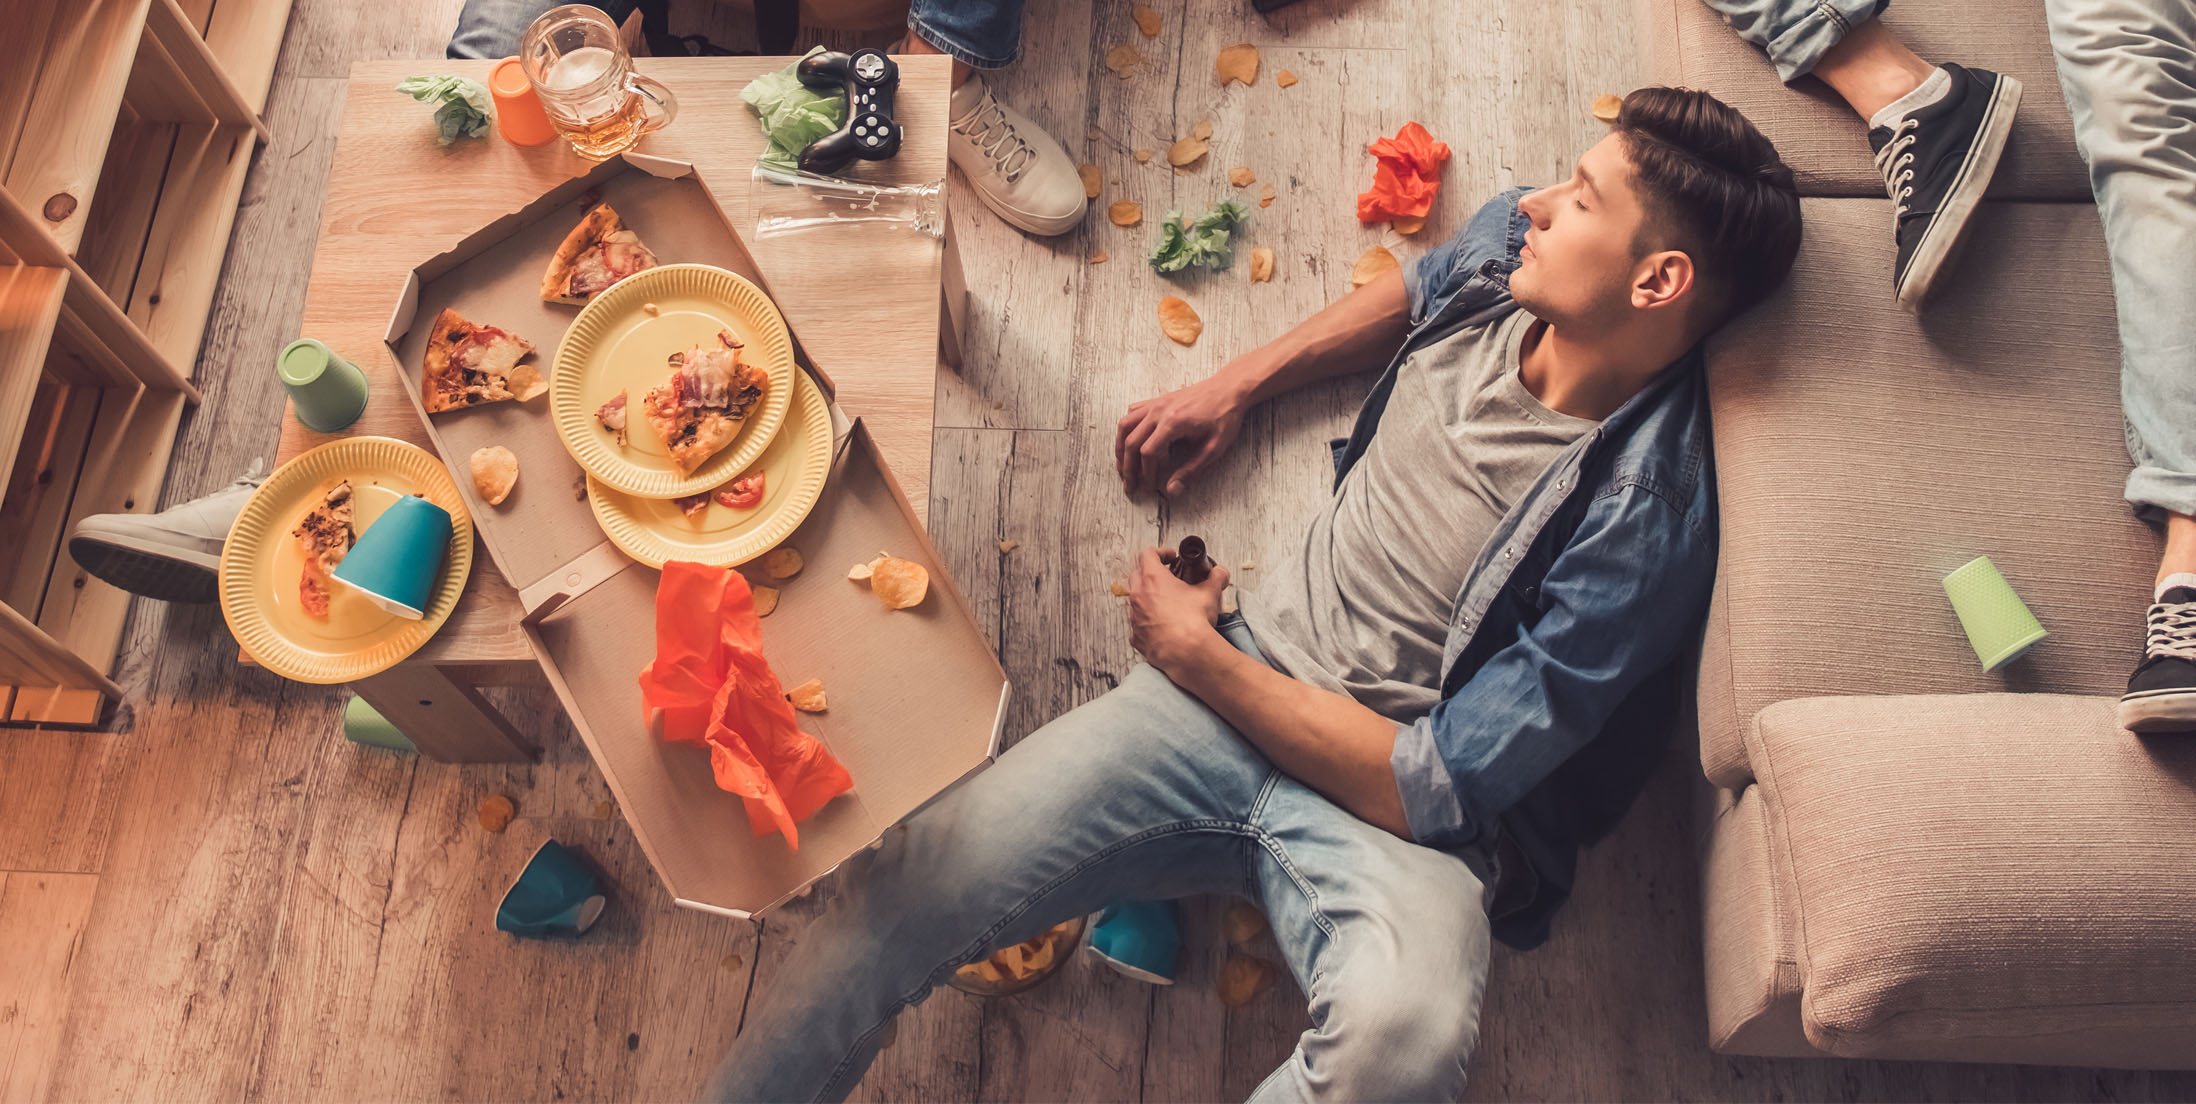 Post-Stag Do Food and What You Need to Know